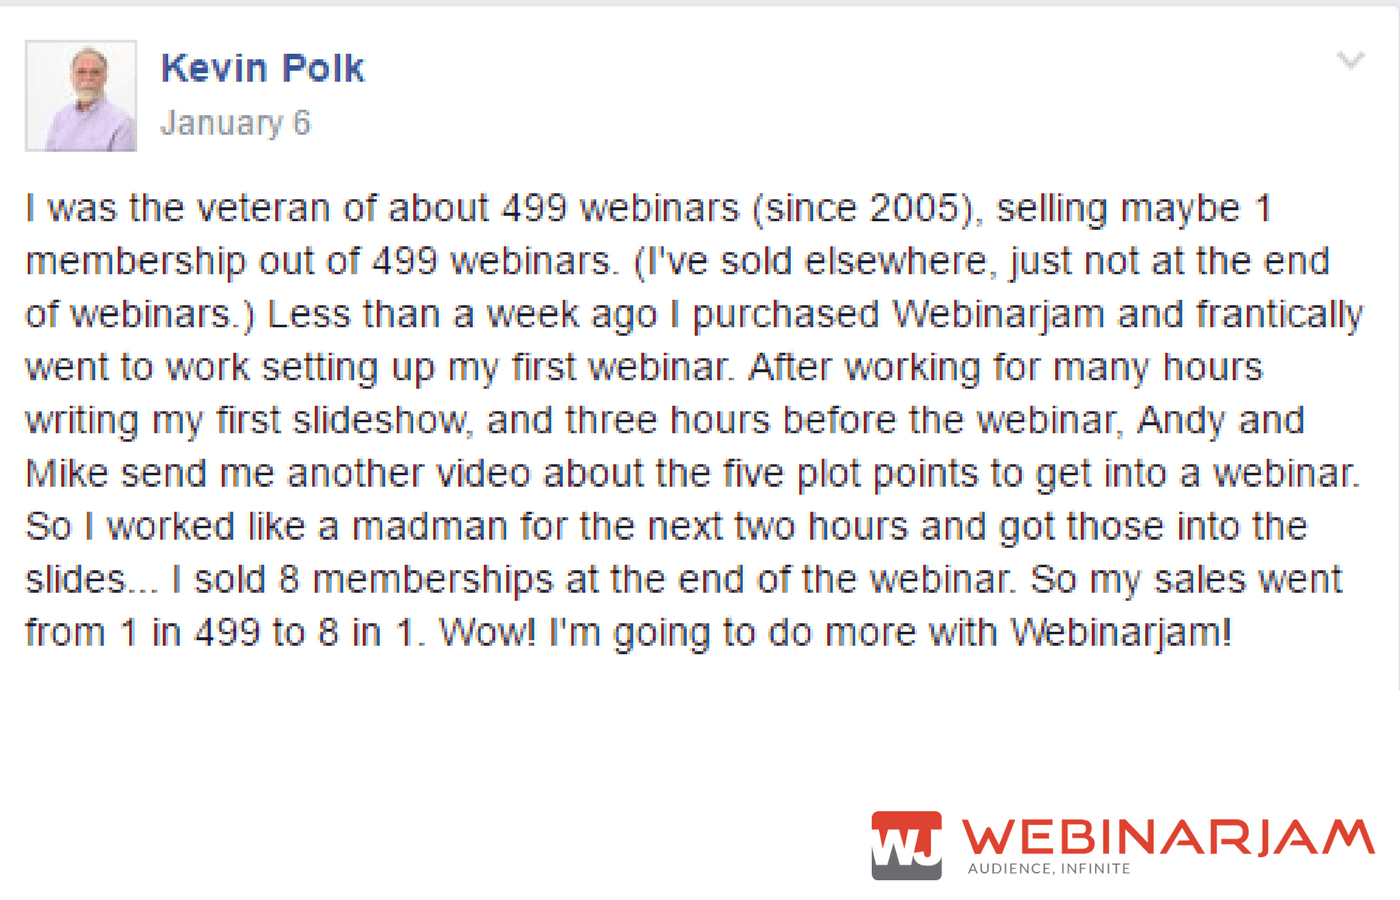 The awesome Facebook post that began our journey getting to know Dr. Kevin Polk and how WebinarJam training and best practices helped grow his business.